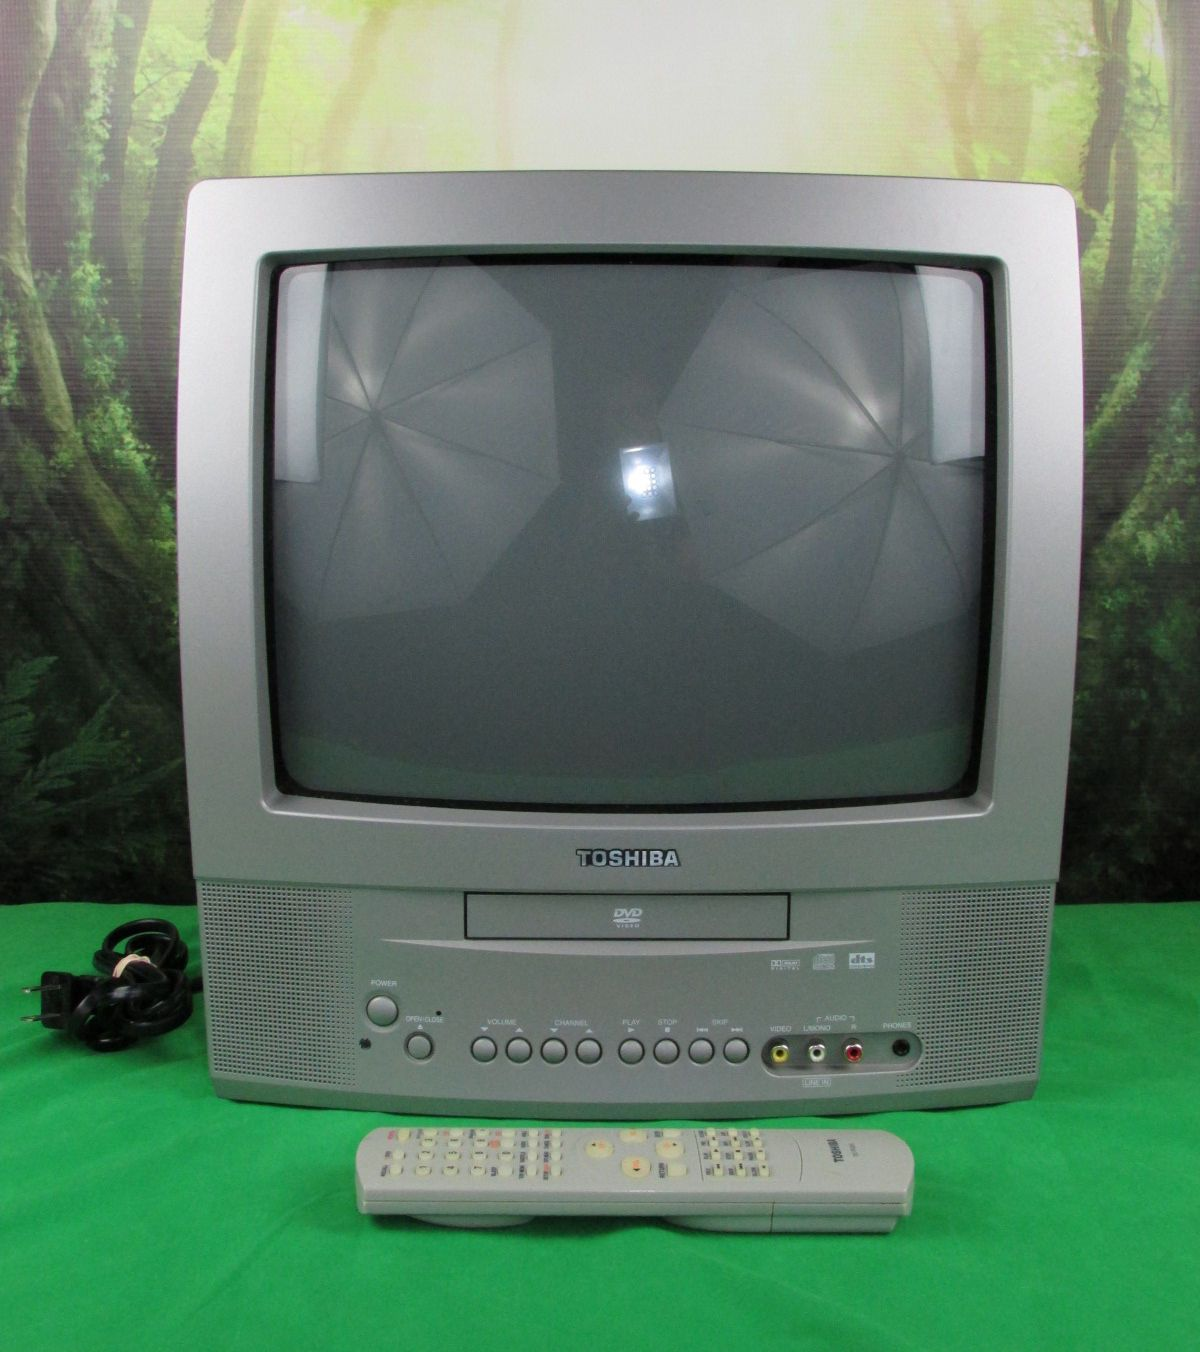 Toshiba Md13n3 13 Crt Tv Color Built-in Dvd Video Player Combo Silver Remote Common Shopping